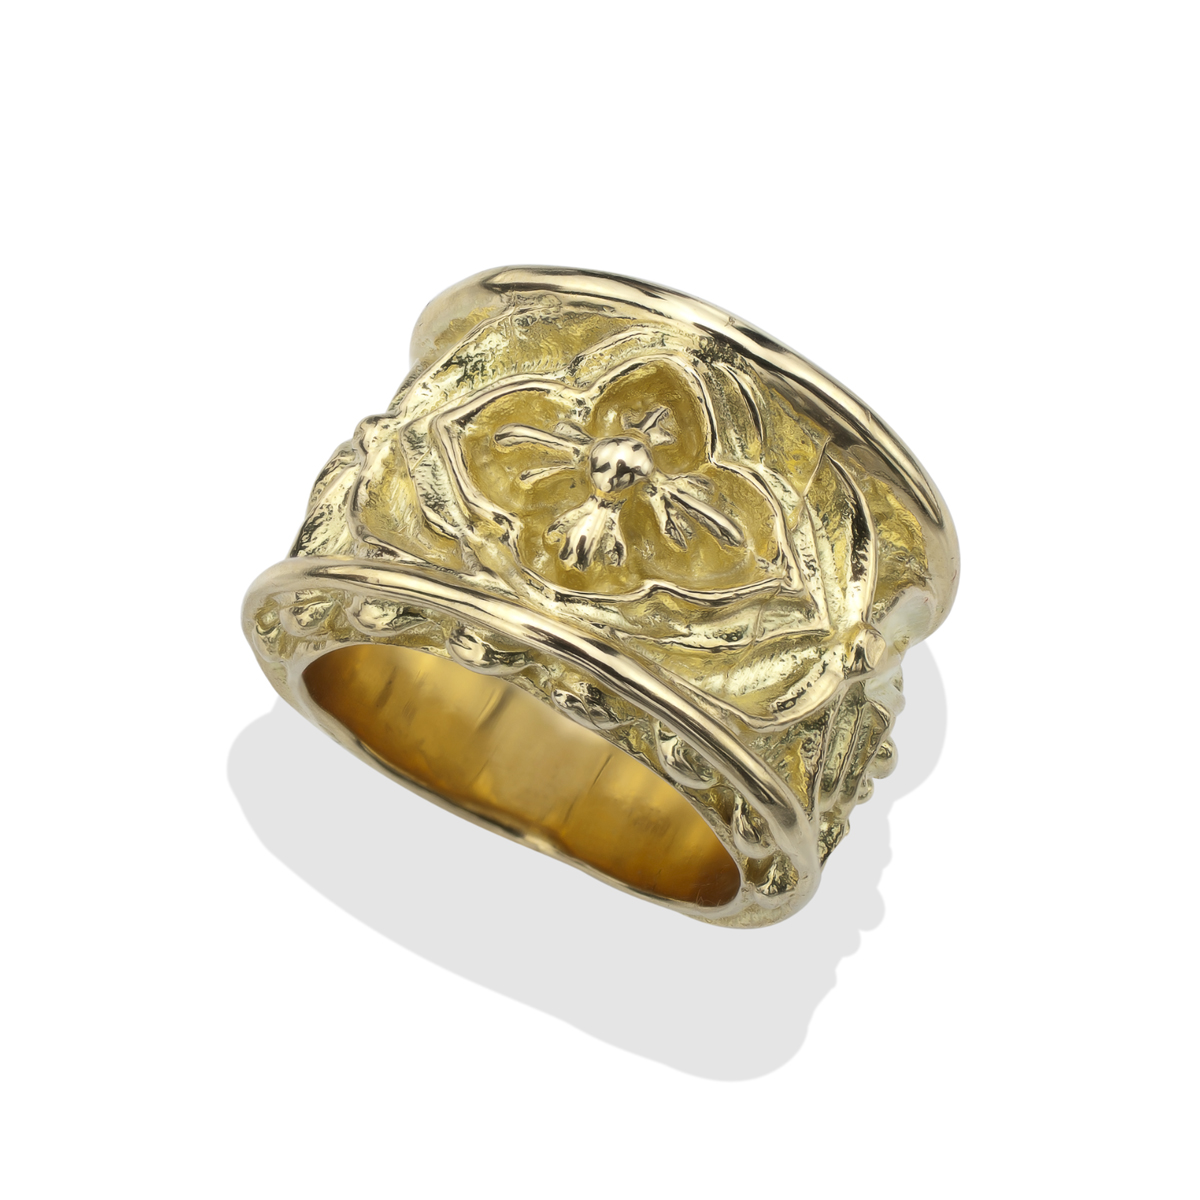 18Kt Gold Mens Gothic Biker Ring